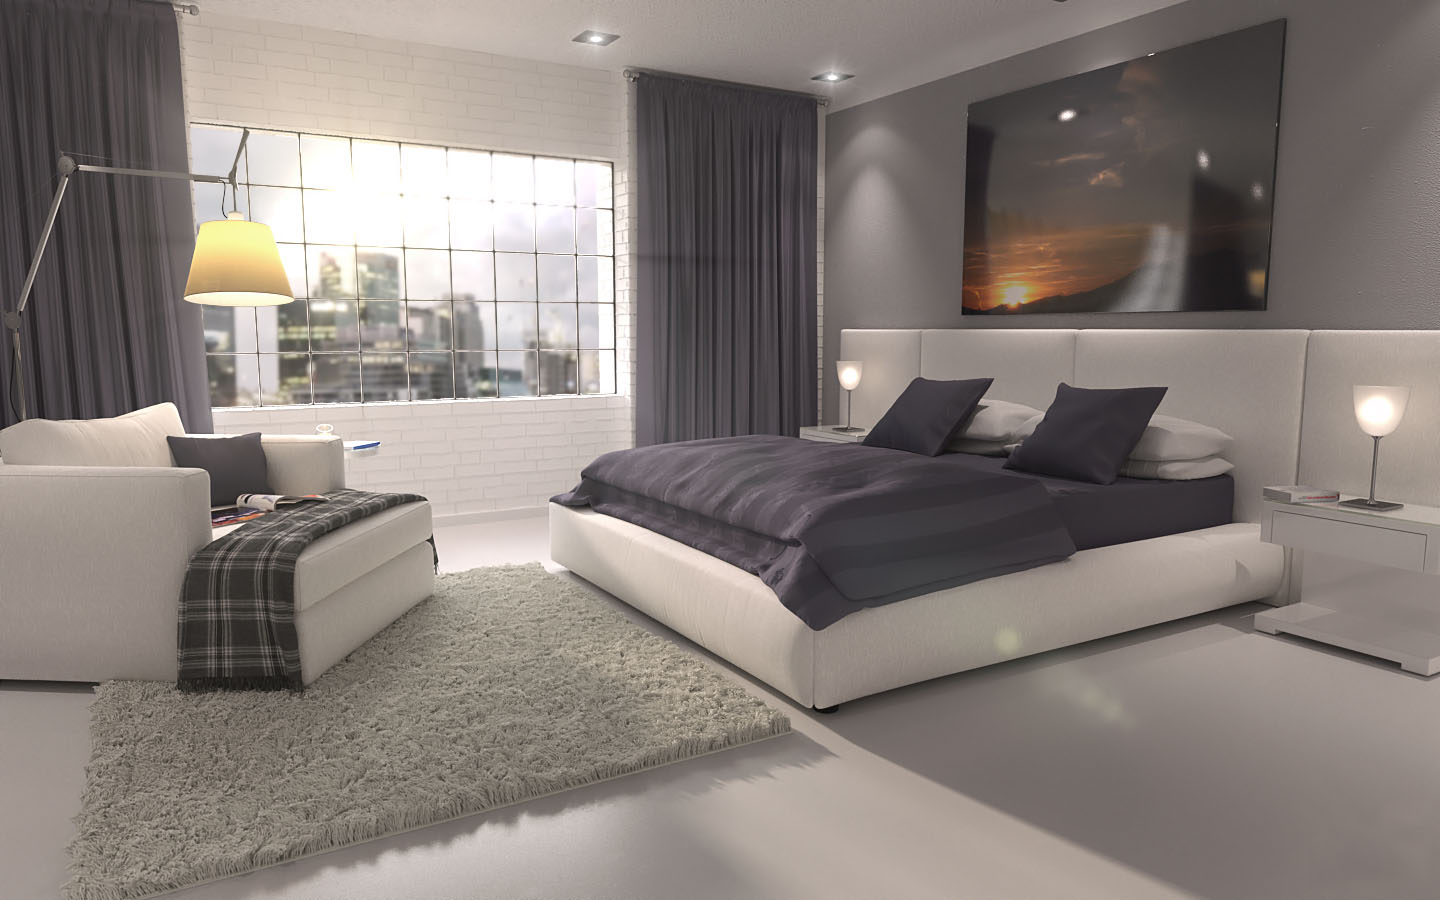 3dpf_industrial_bedroom_slider